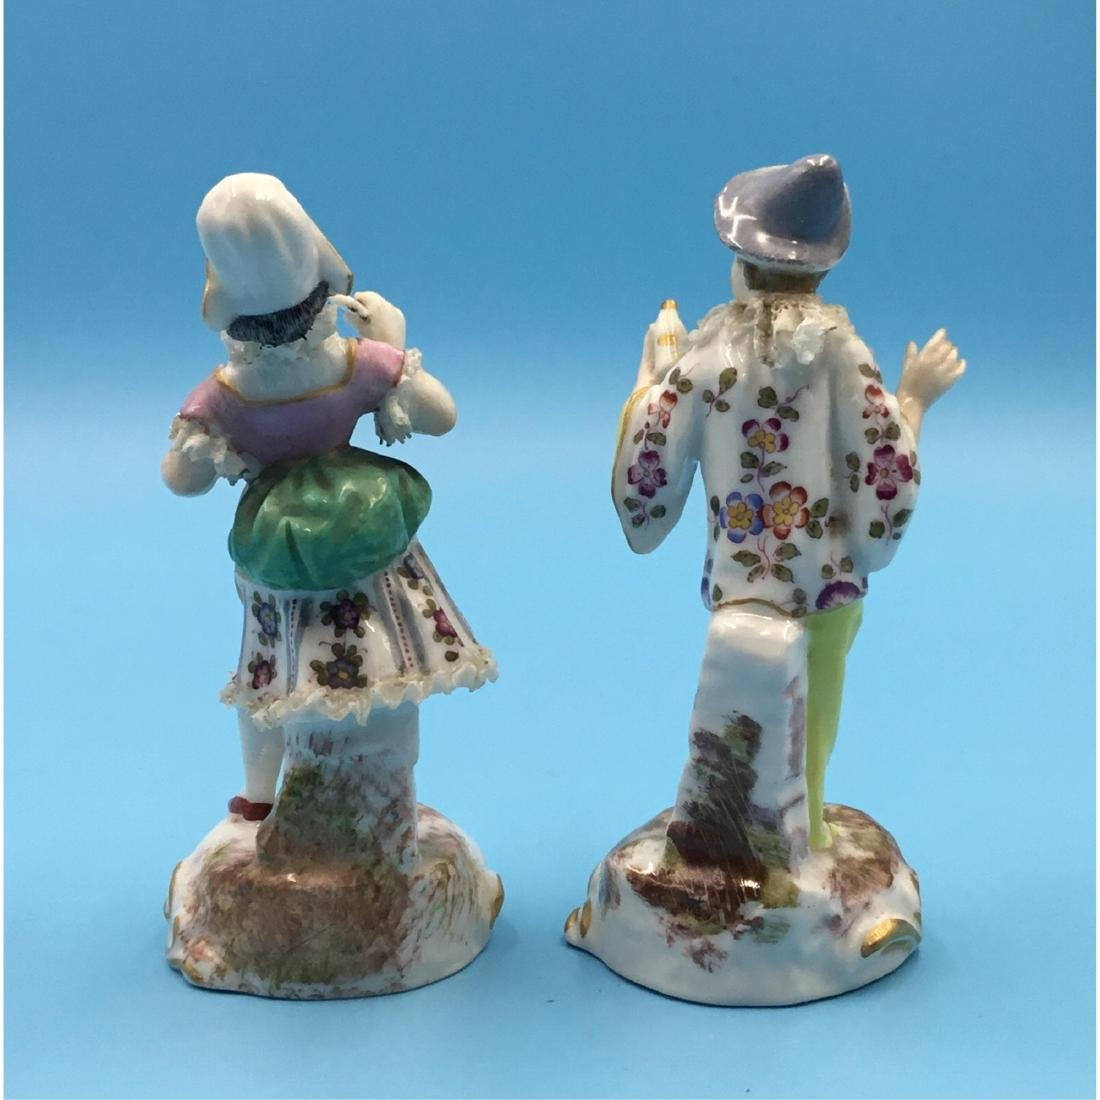 PAIR FRENCH 19TH C. MINIATURE PORCELAIN FIGURINES - 3